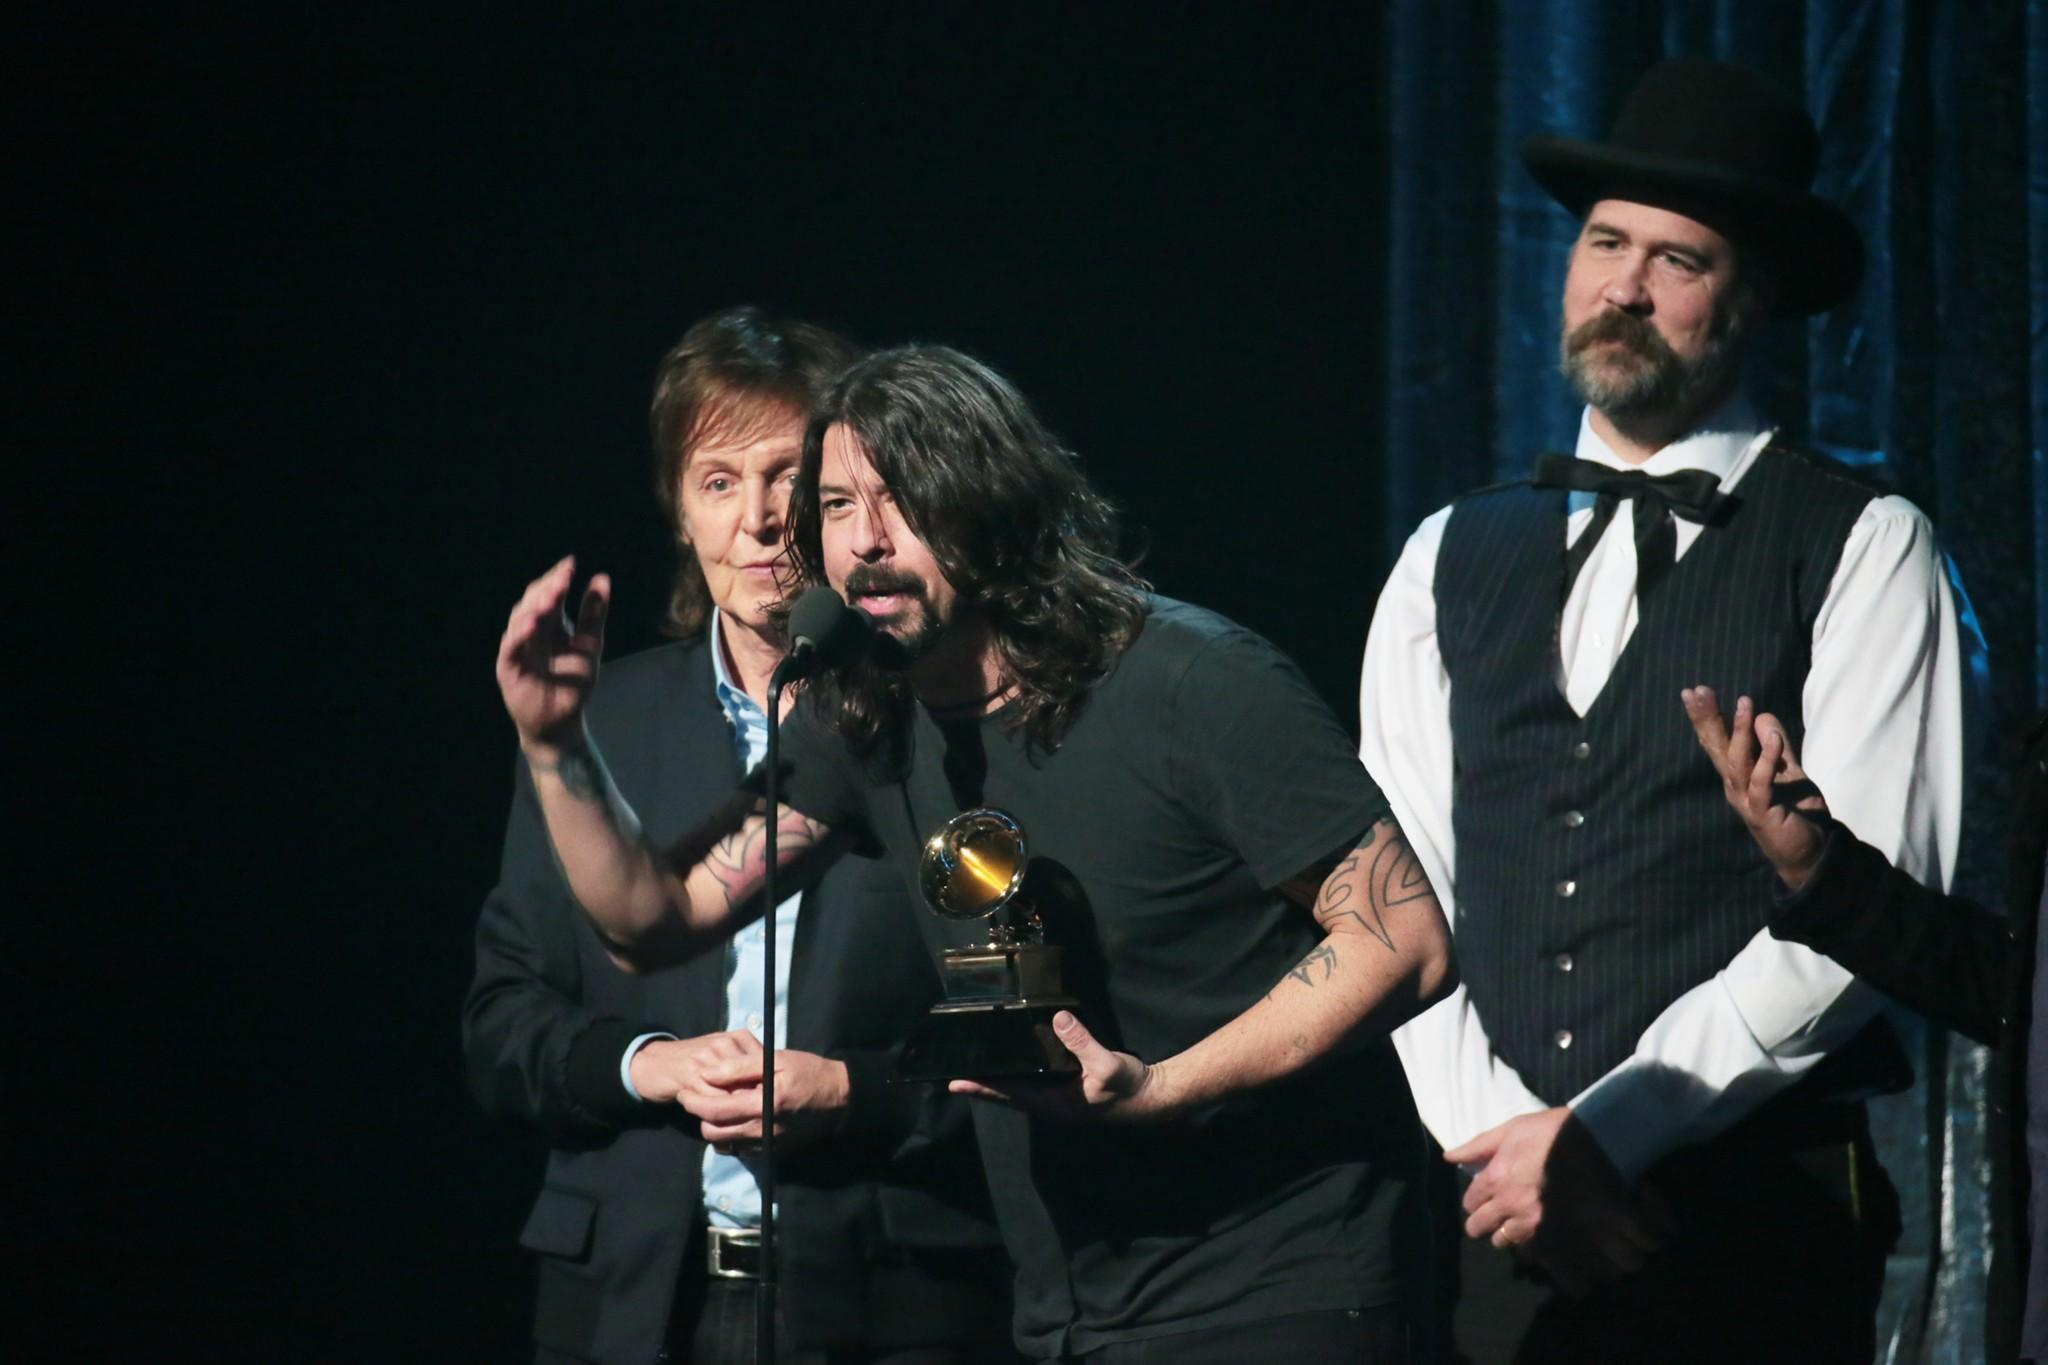 Paul McCartney Dave Grohl And Krist Novoselic Accept The Grammy For Best Rock Song